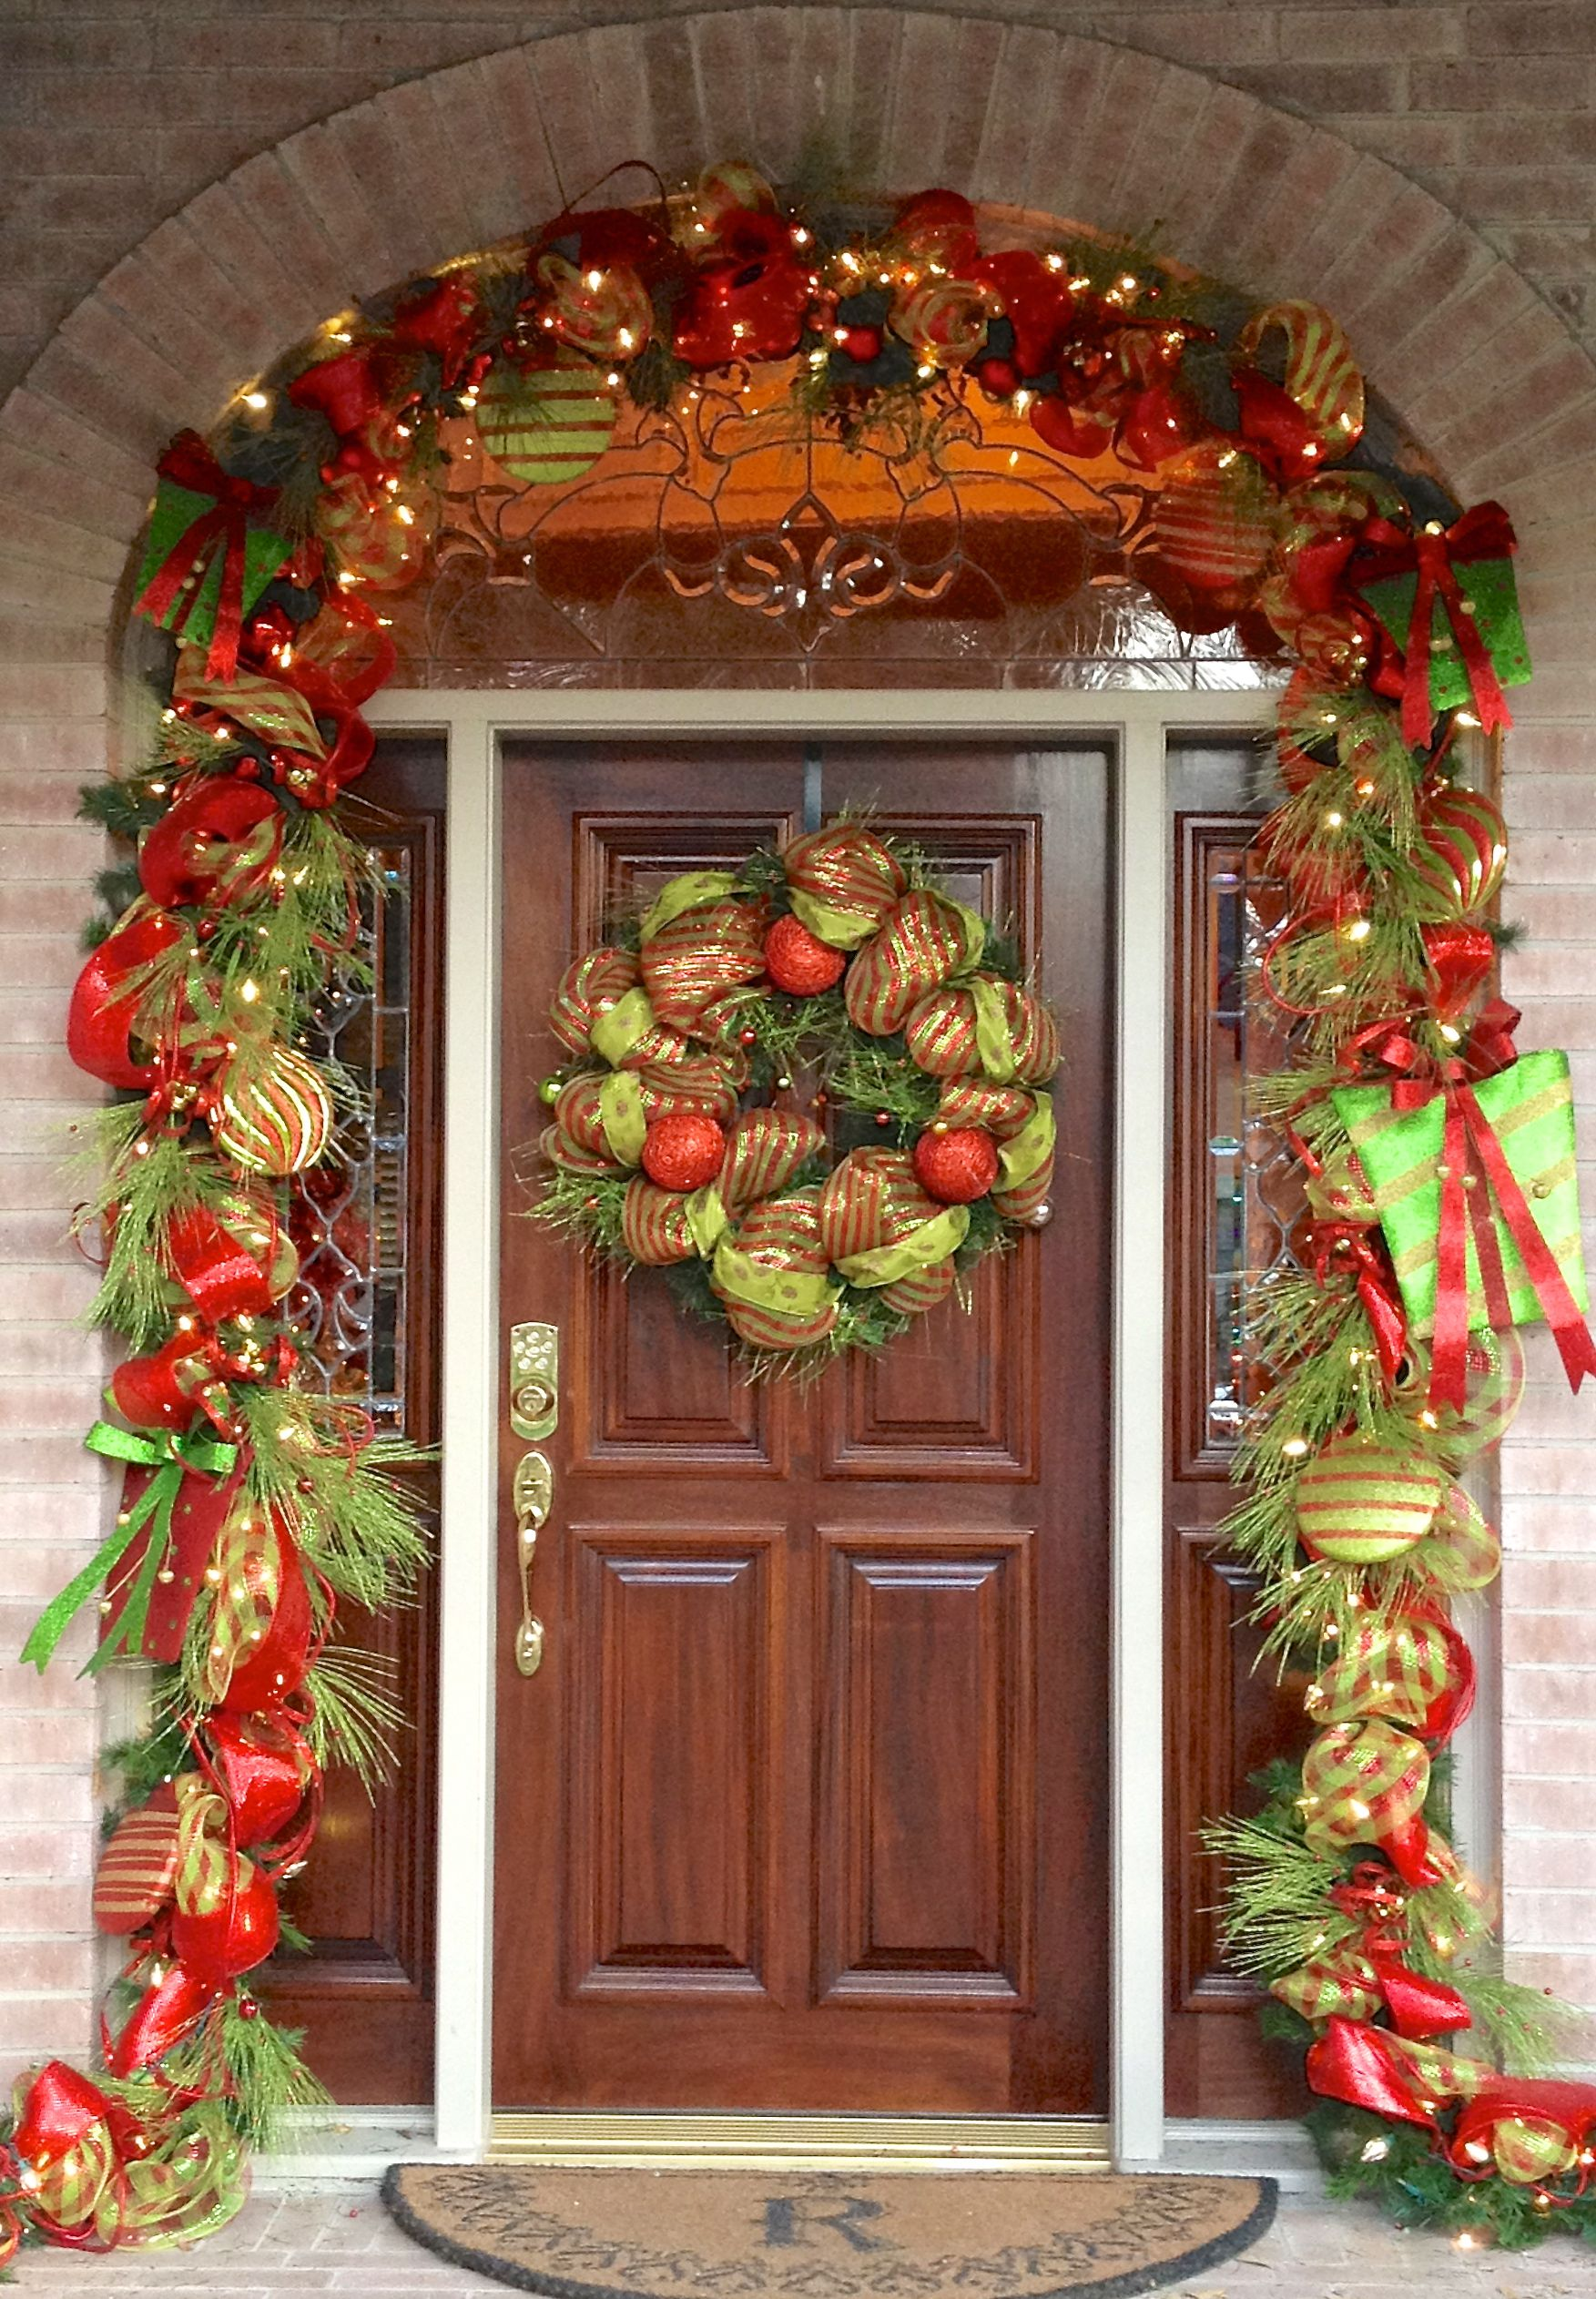 Front Door Decor A Floral Touch Christmas Entry Christmas Door Decorations Outdoor Christmas Decorations